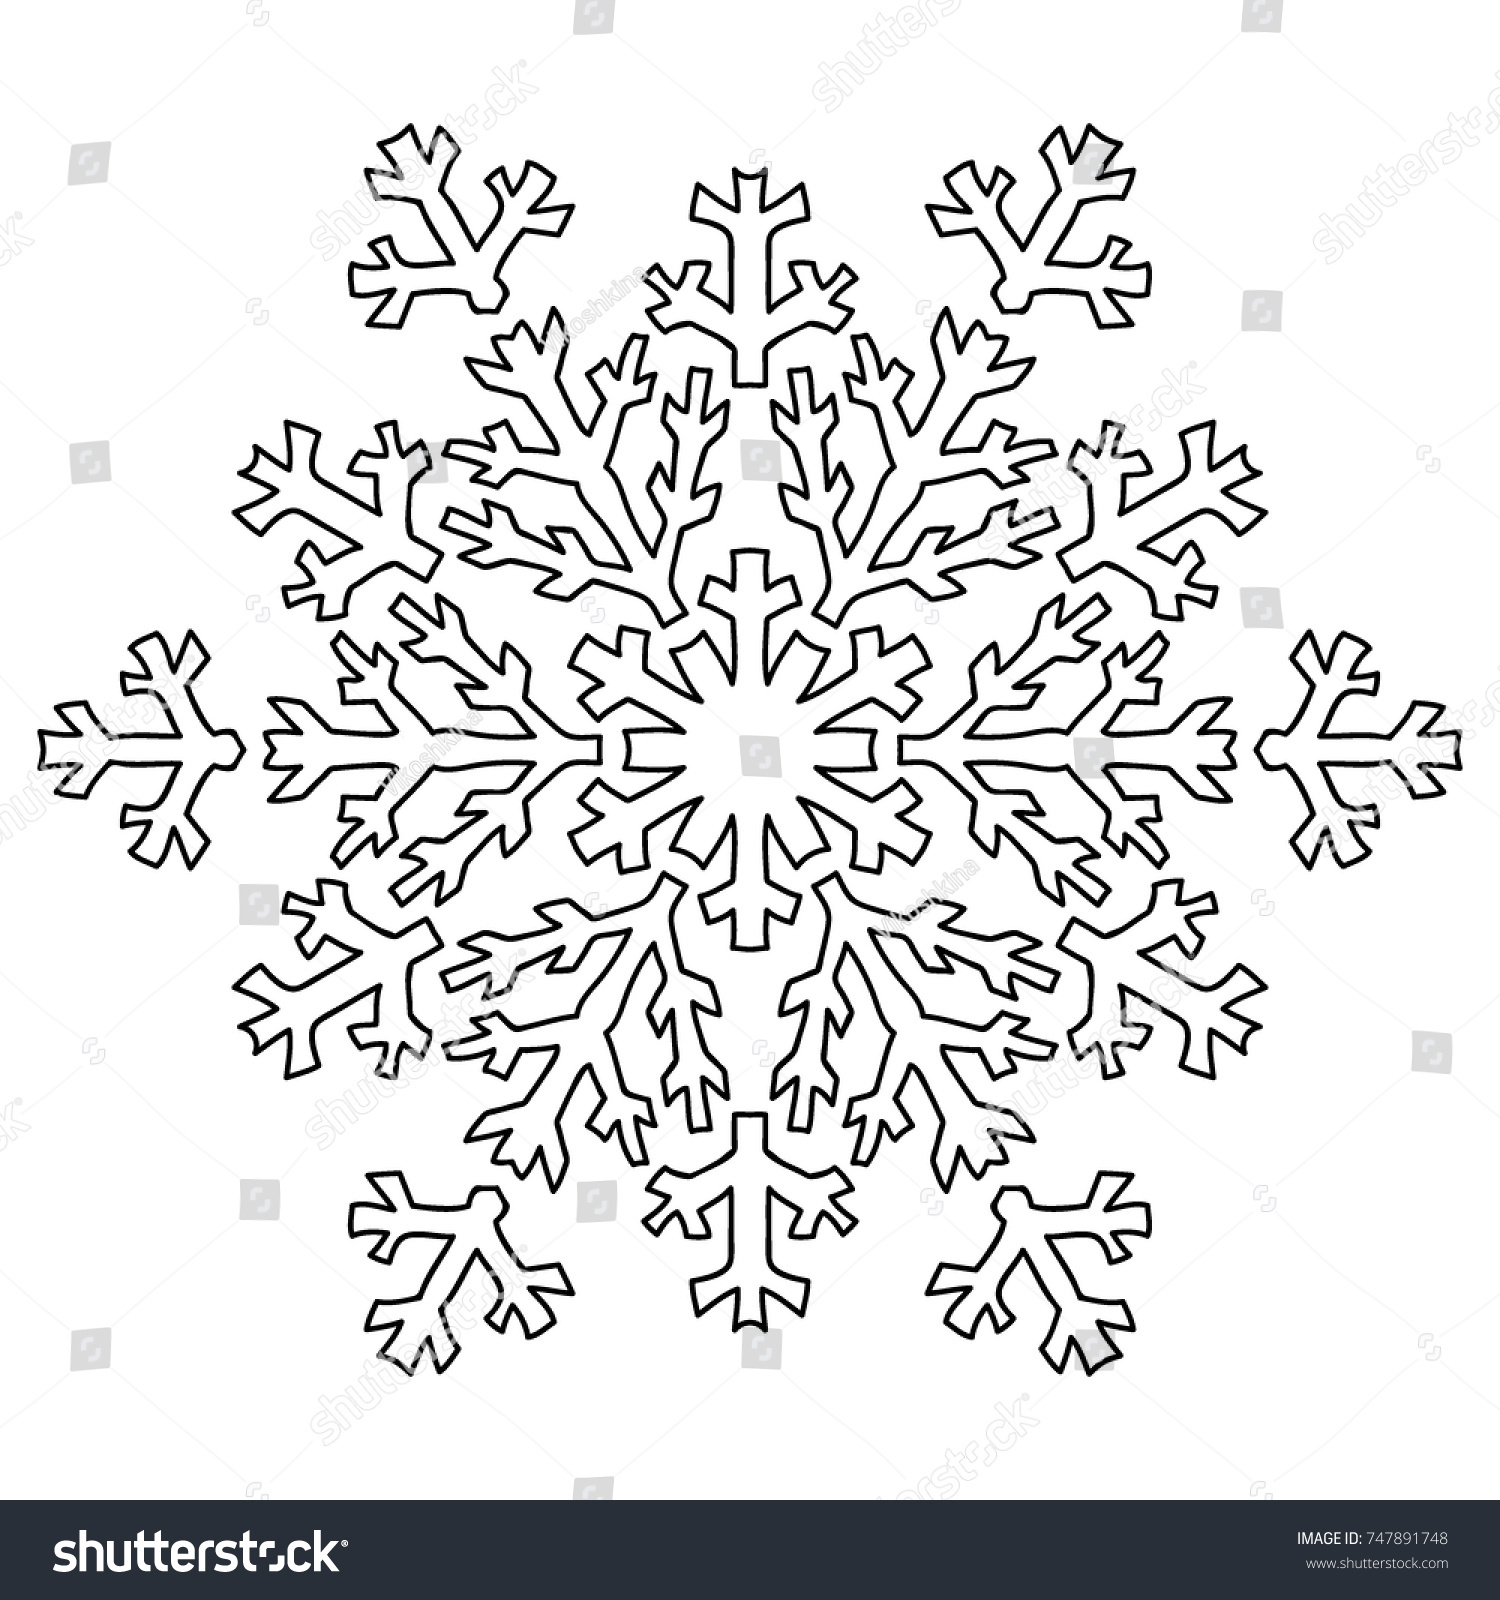 Delicate Snowflake Adult Coloring Book Page Stock Vector 747891748 ...